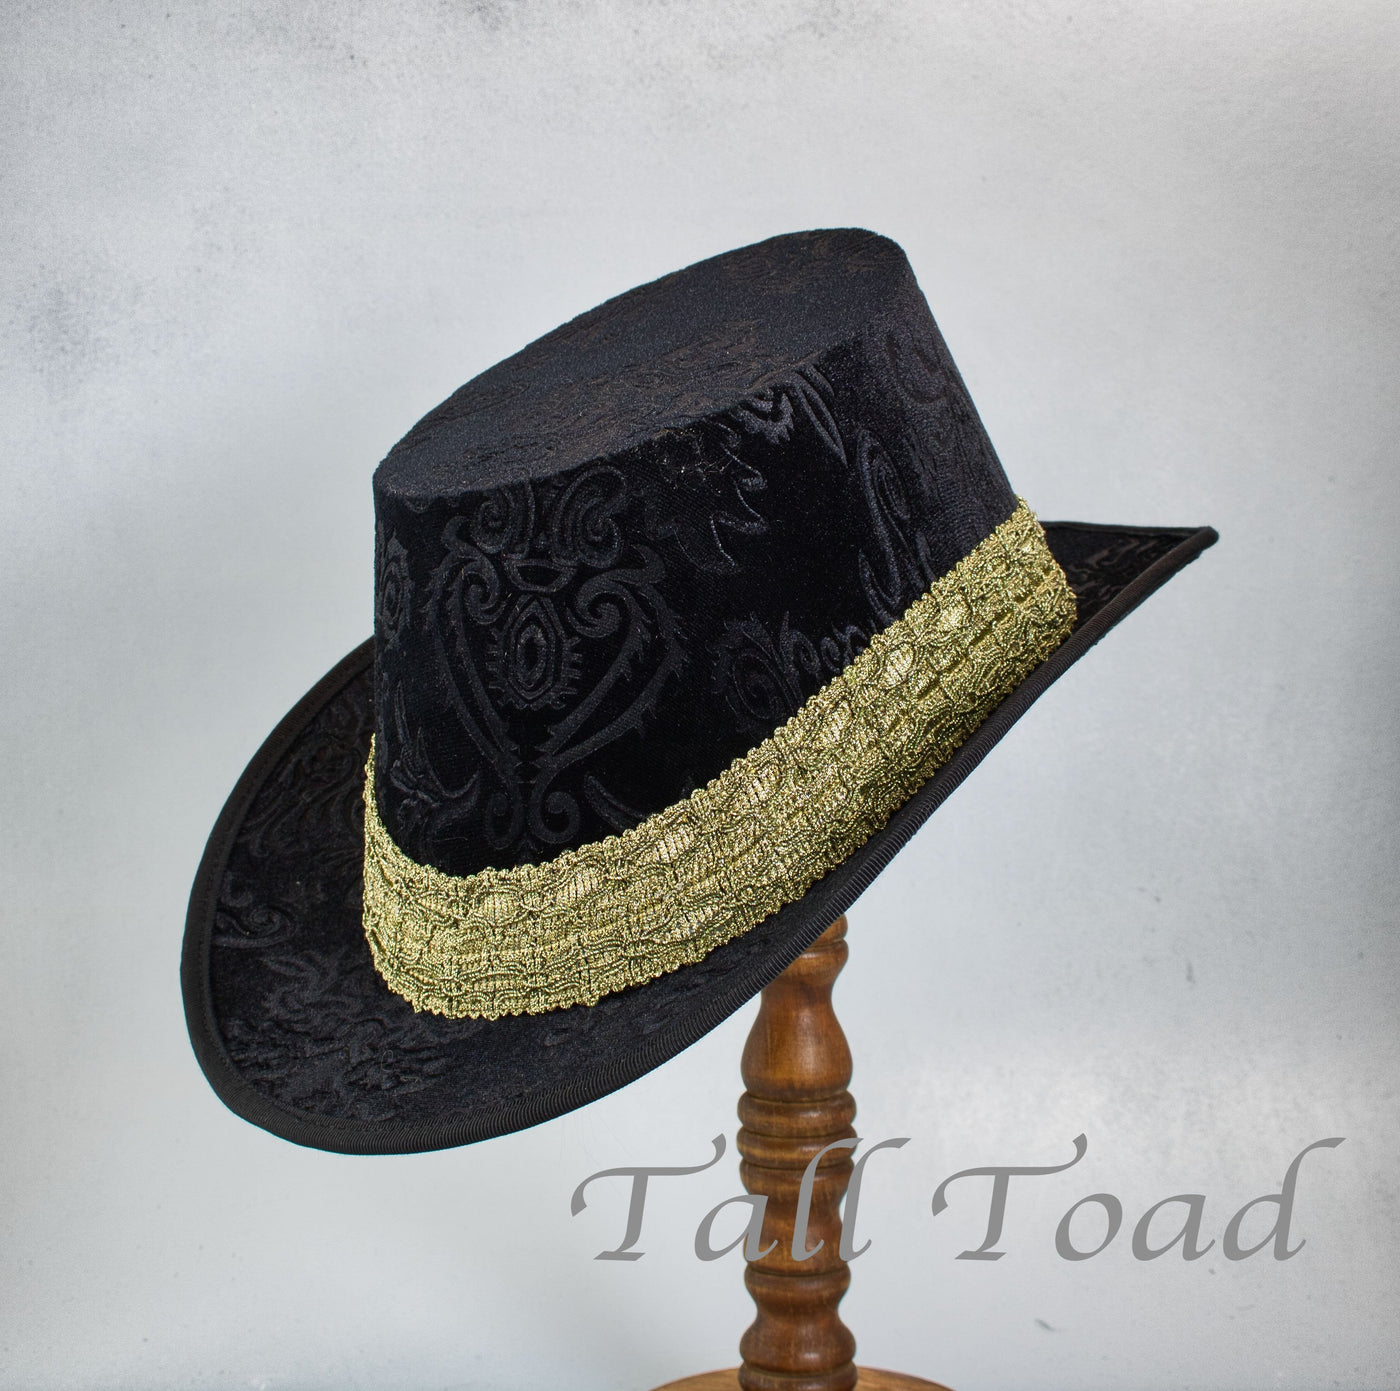 Crushed Velvet Tall Hat - Black Embossed / Gold - Tall Toad